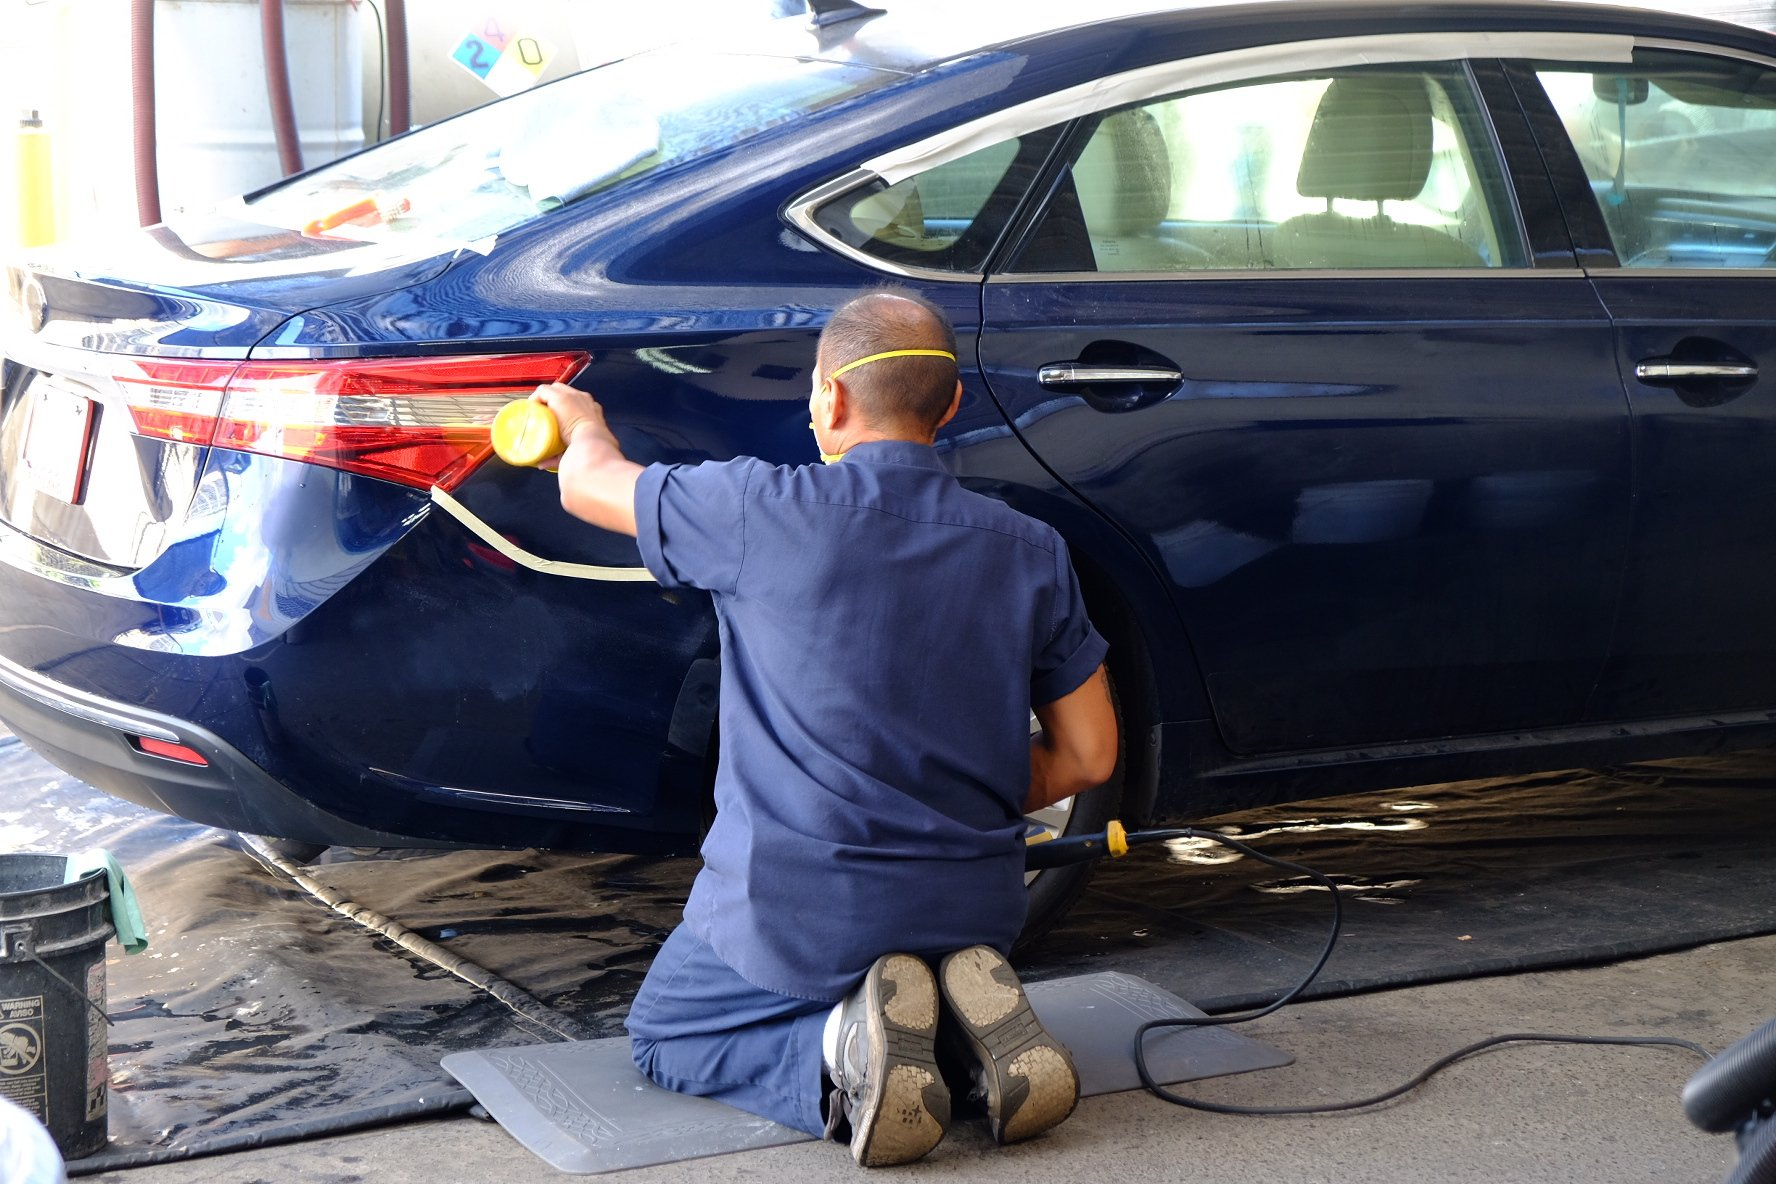 A Westside Fender Body Refinishing worker at our auto body shop in Waipahu, HI